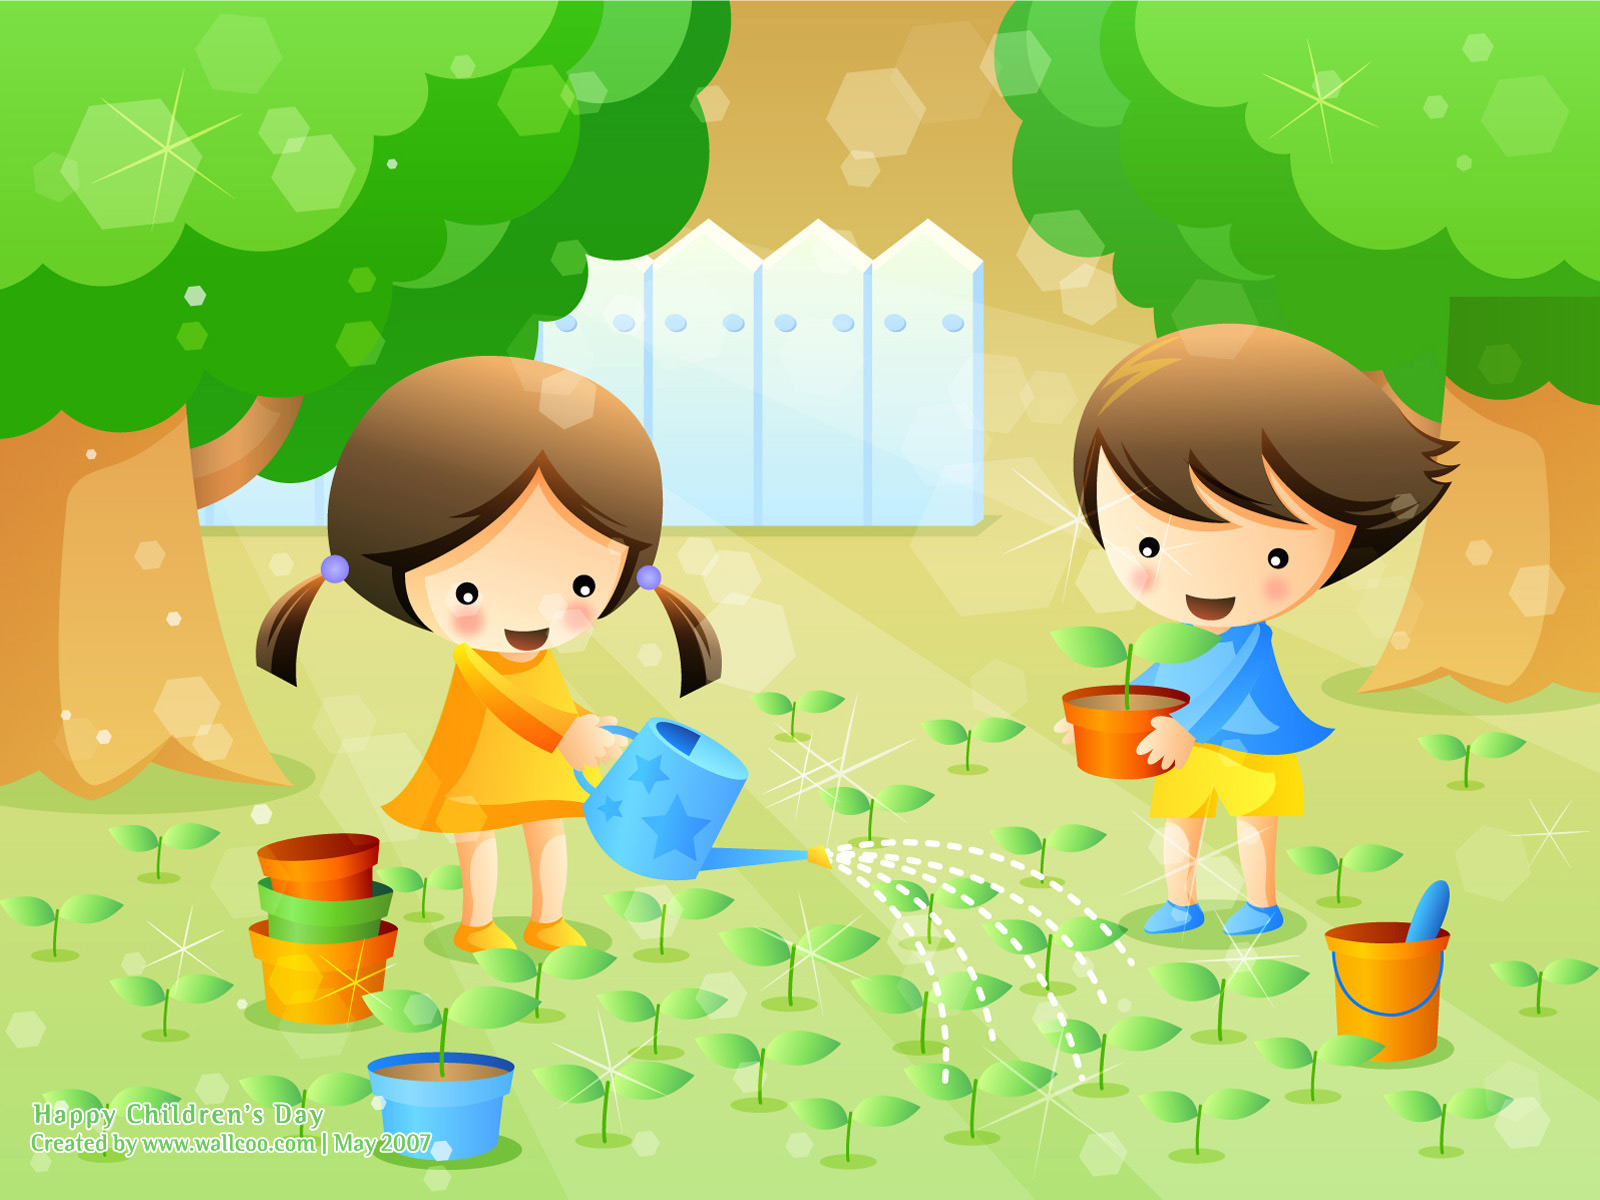 Colourful Illustrations for Childrens Day 16001200 NO14 Wallpaper 1600x1200